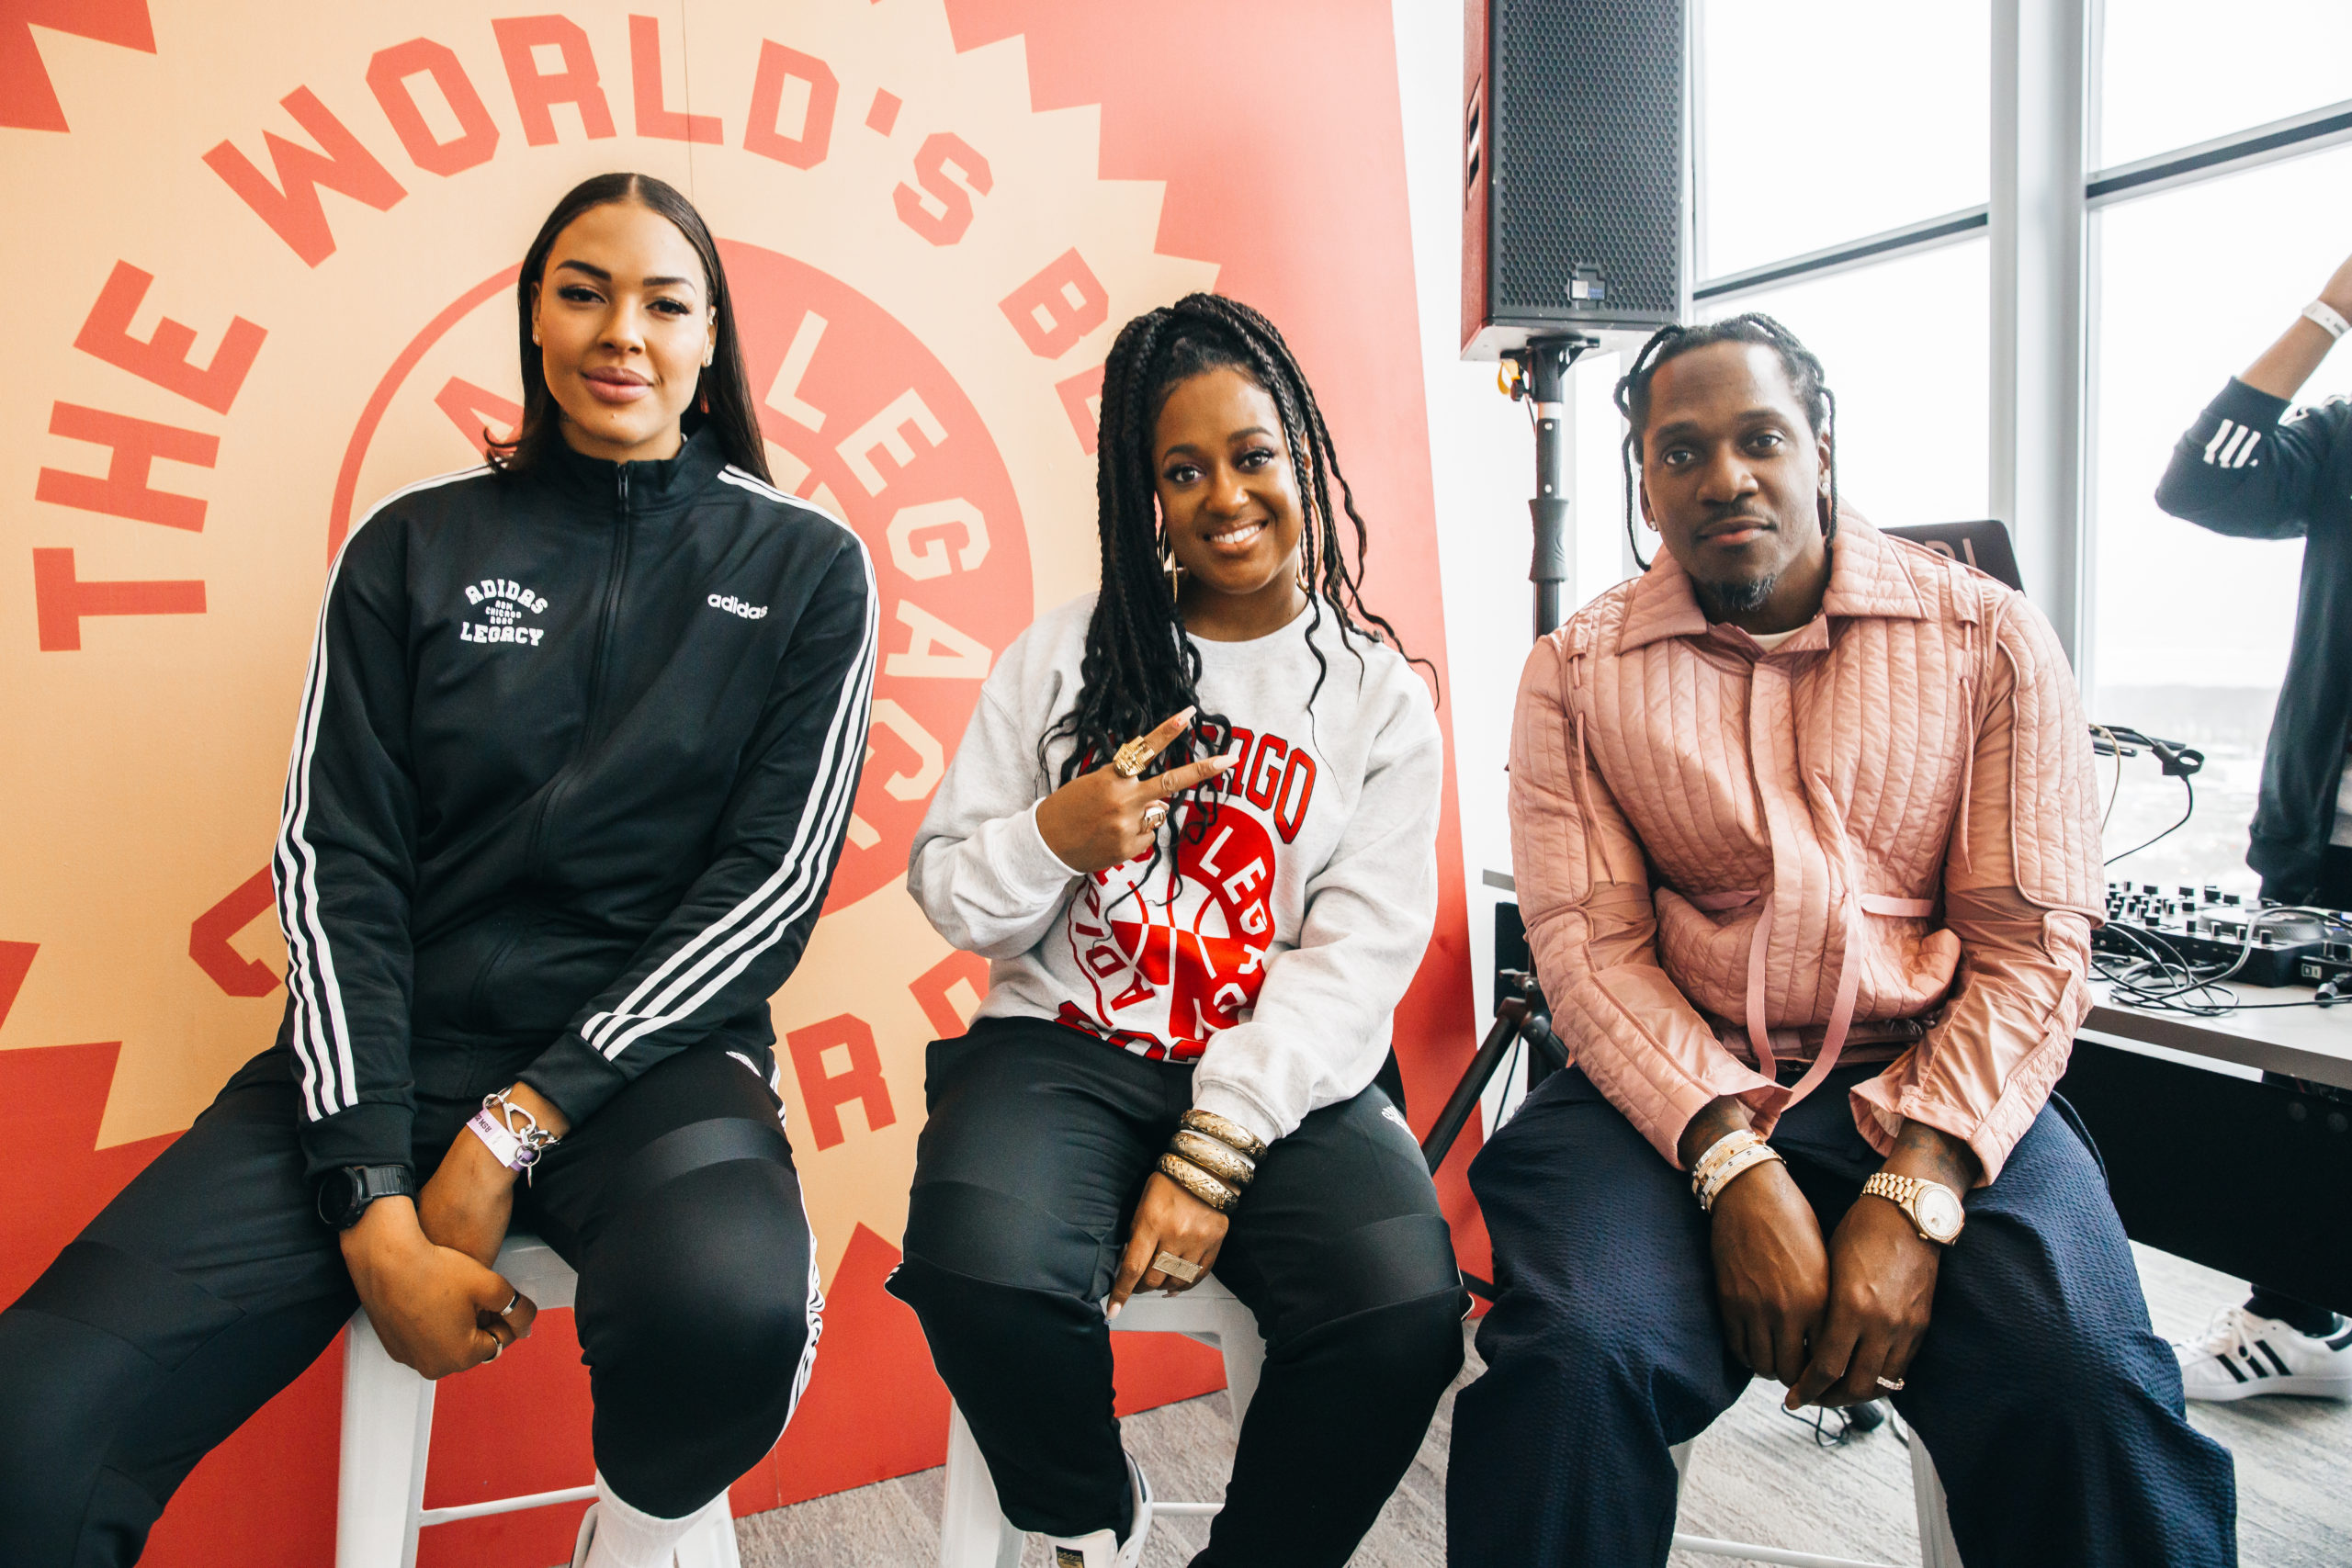 Quinto Norma infermiera  adidas Athletes & Entertainers including James Harden, Derrick Rose and  Candace Parker Hold the 'World's Best Career Day' for Chicago Student  Athletes During NBA All-Star Weekend | RESPECT.